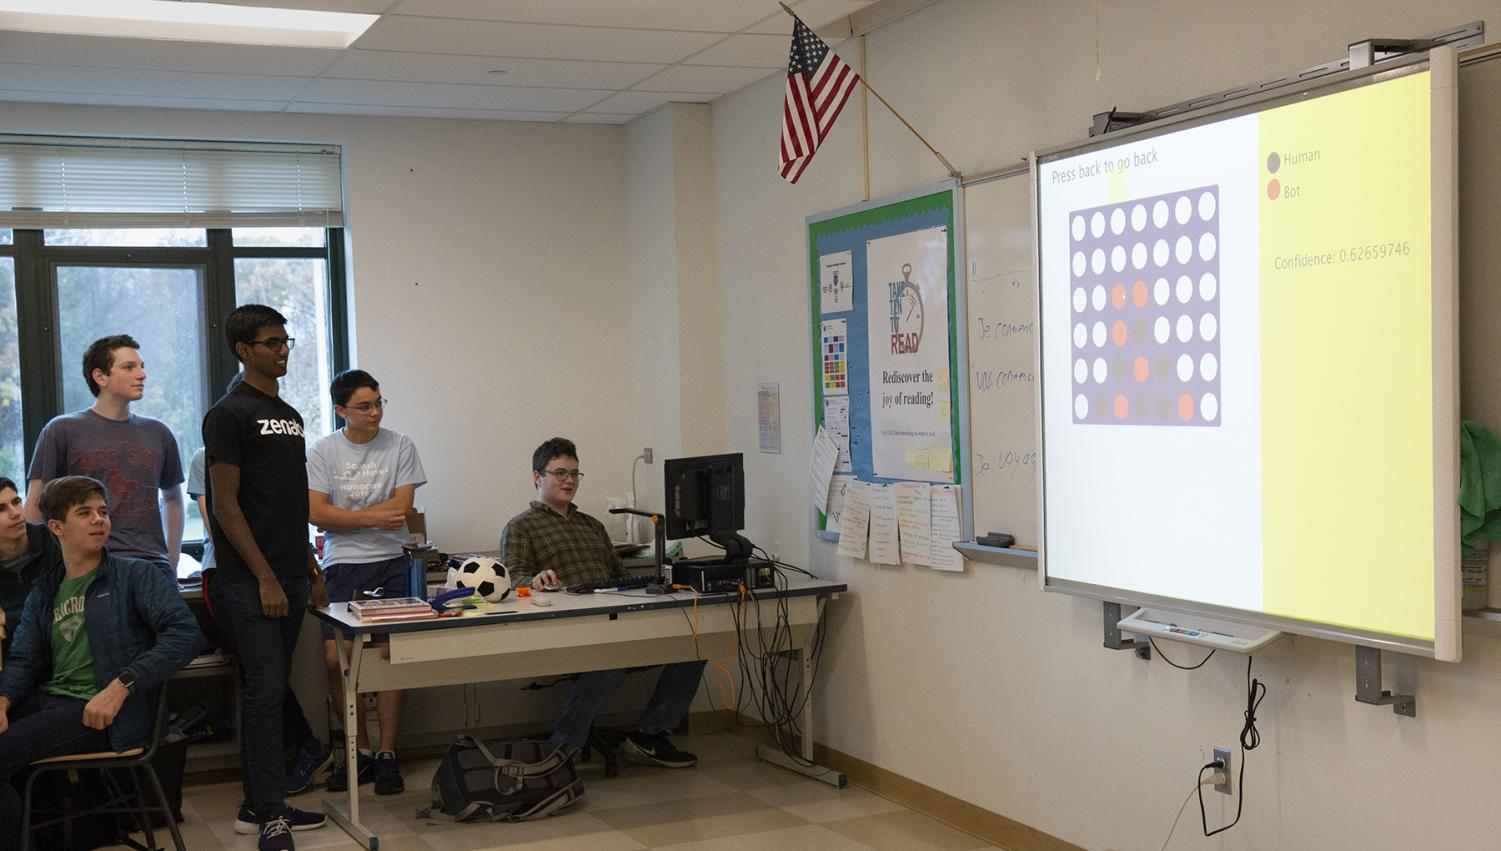 A team at the Code-a-thon presents their final design to a panel of judges. Their program, which included a virtual checkers match against a bot, won first place.